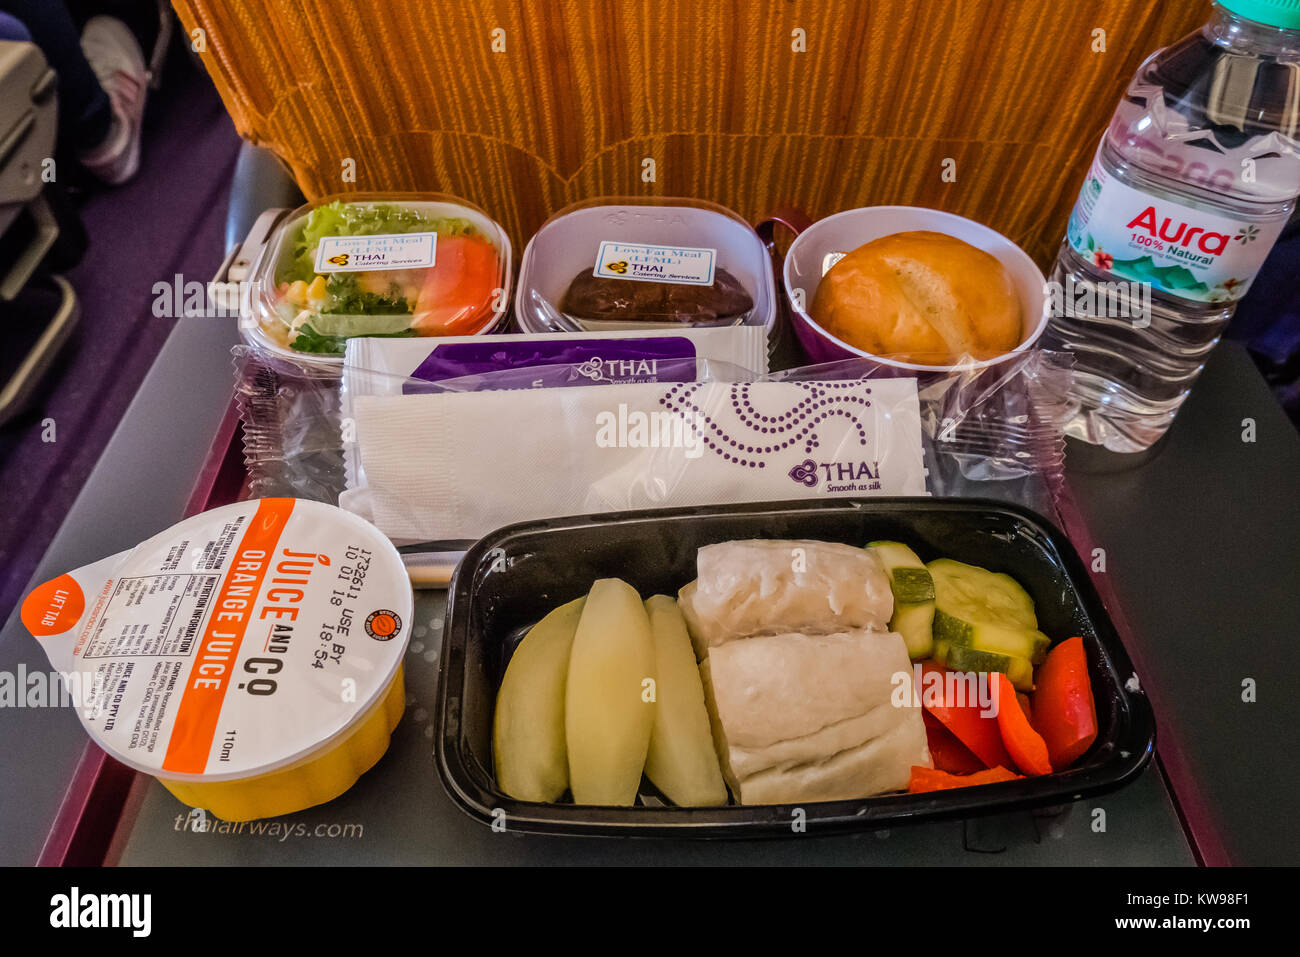 low fat heathy airline meal stock photo 170463973 alamy